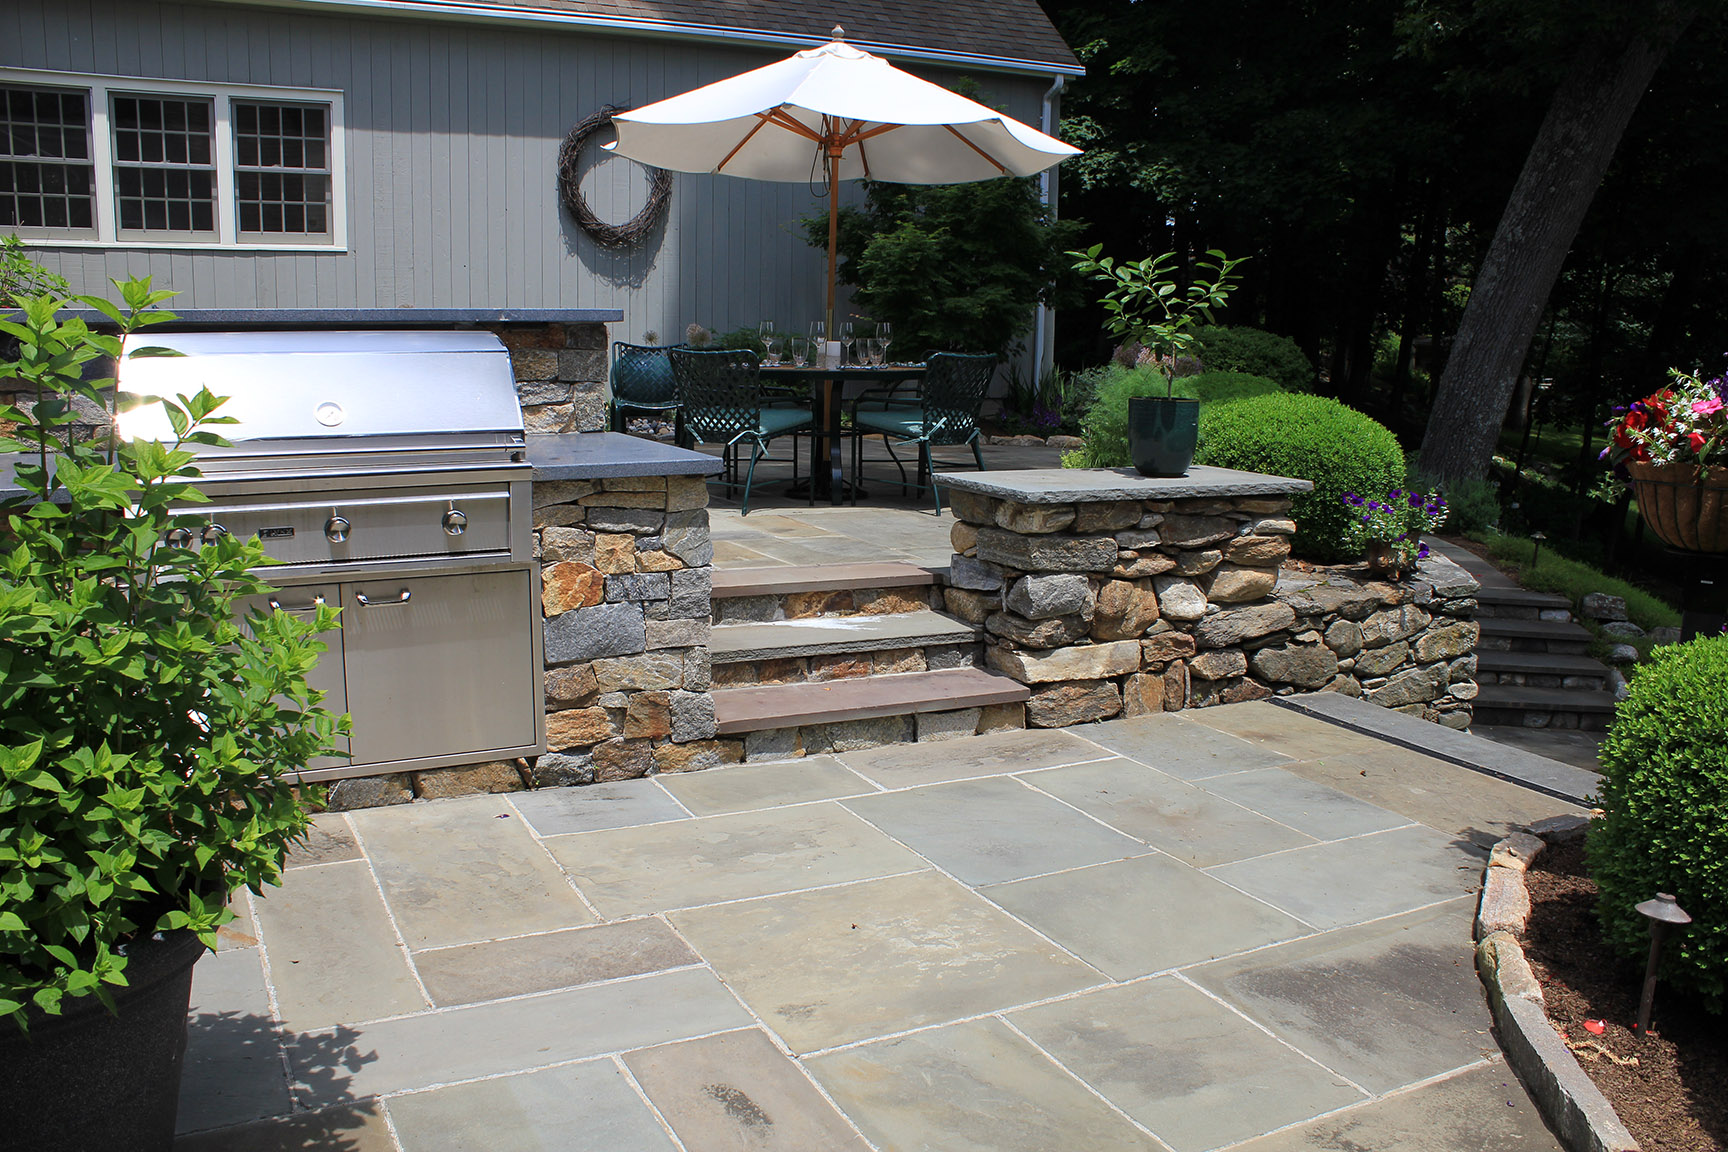 MATERIALS USED: FULL RANGE, NATURAL CLEFT BLUESTONE PATIO; CT FIELDSTONE WALLS; CT FIELDSTONE LEDGE CUT AROUND GRILL WITH NEWPORT DARK GRANITE COUNTER